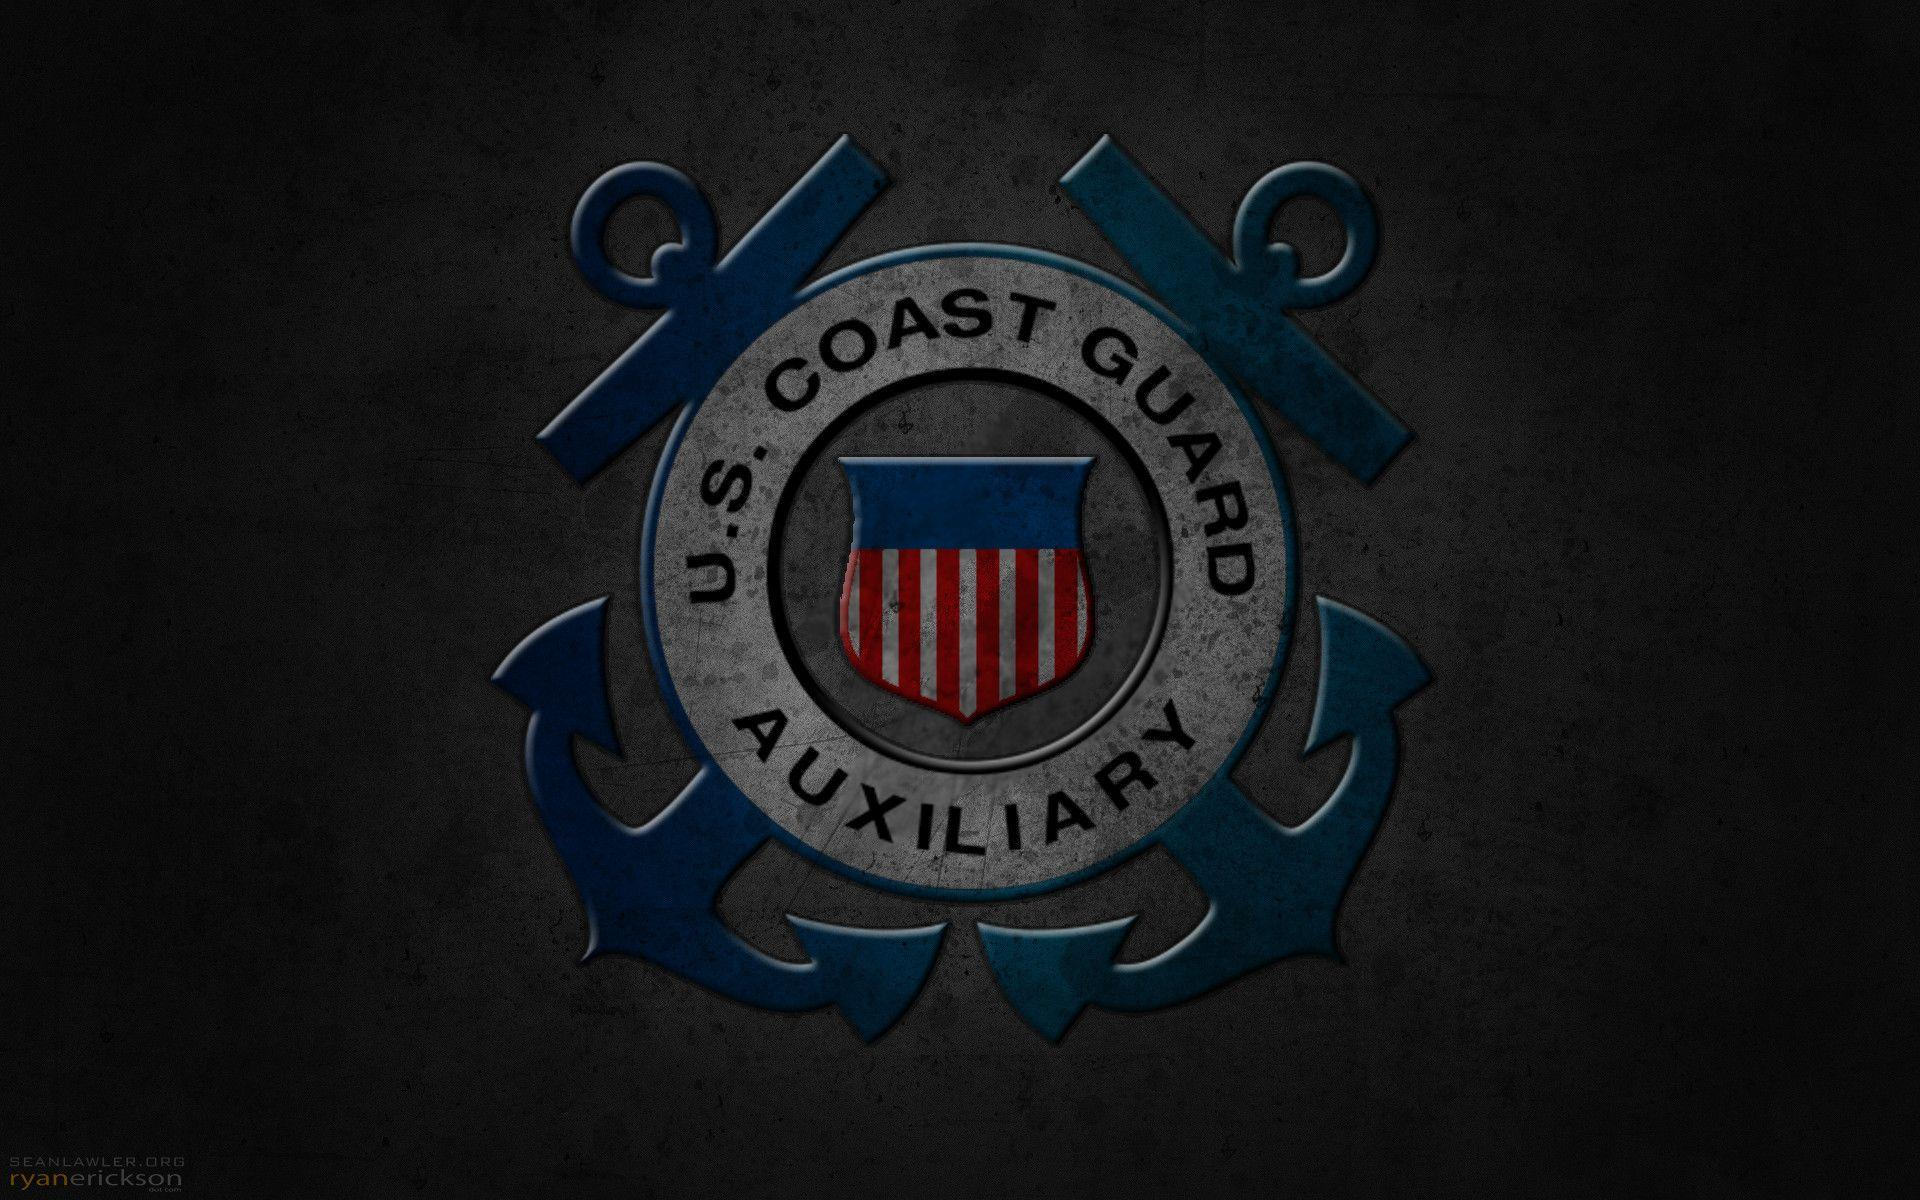 Image For > Coast Guard Wallpapers